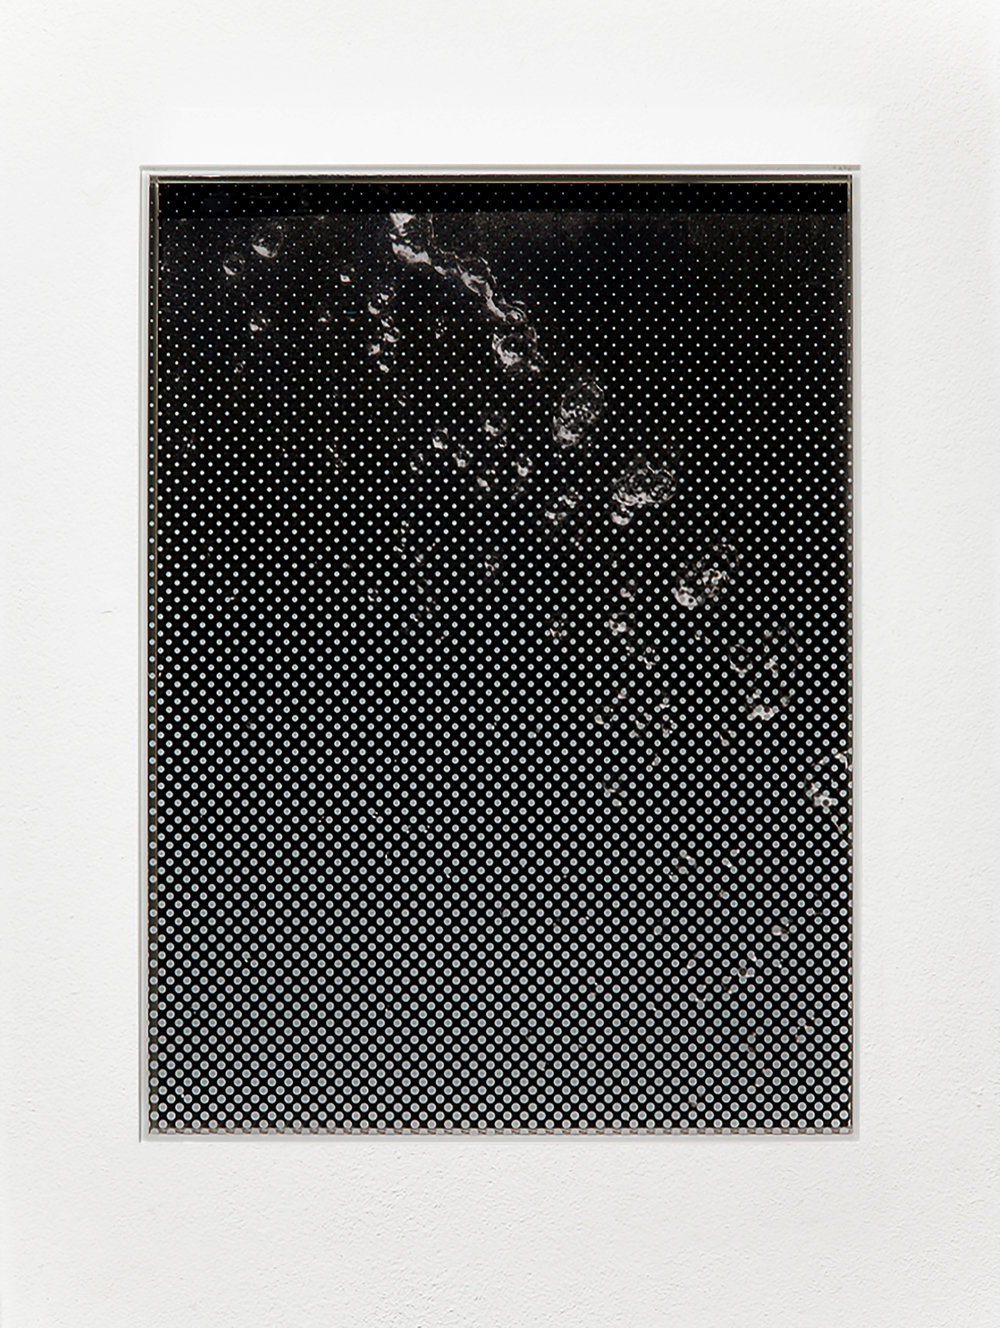 Untitled , 2014 Pencil on paper, Perspex, privacy film 21.0 x 29.7 cm